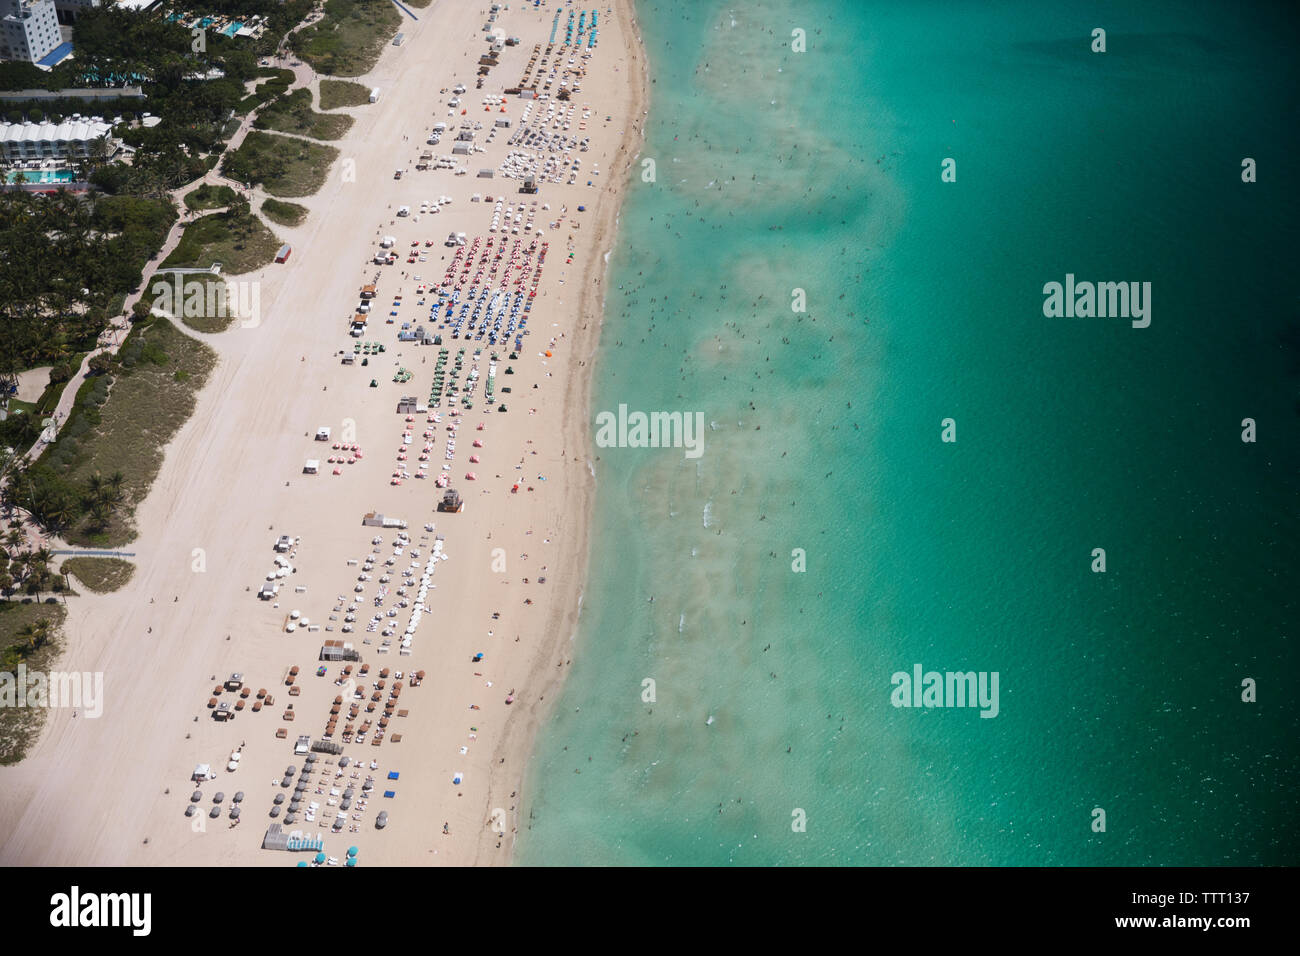 Aerial view of sunshades on beach - Stock Image